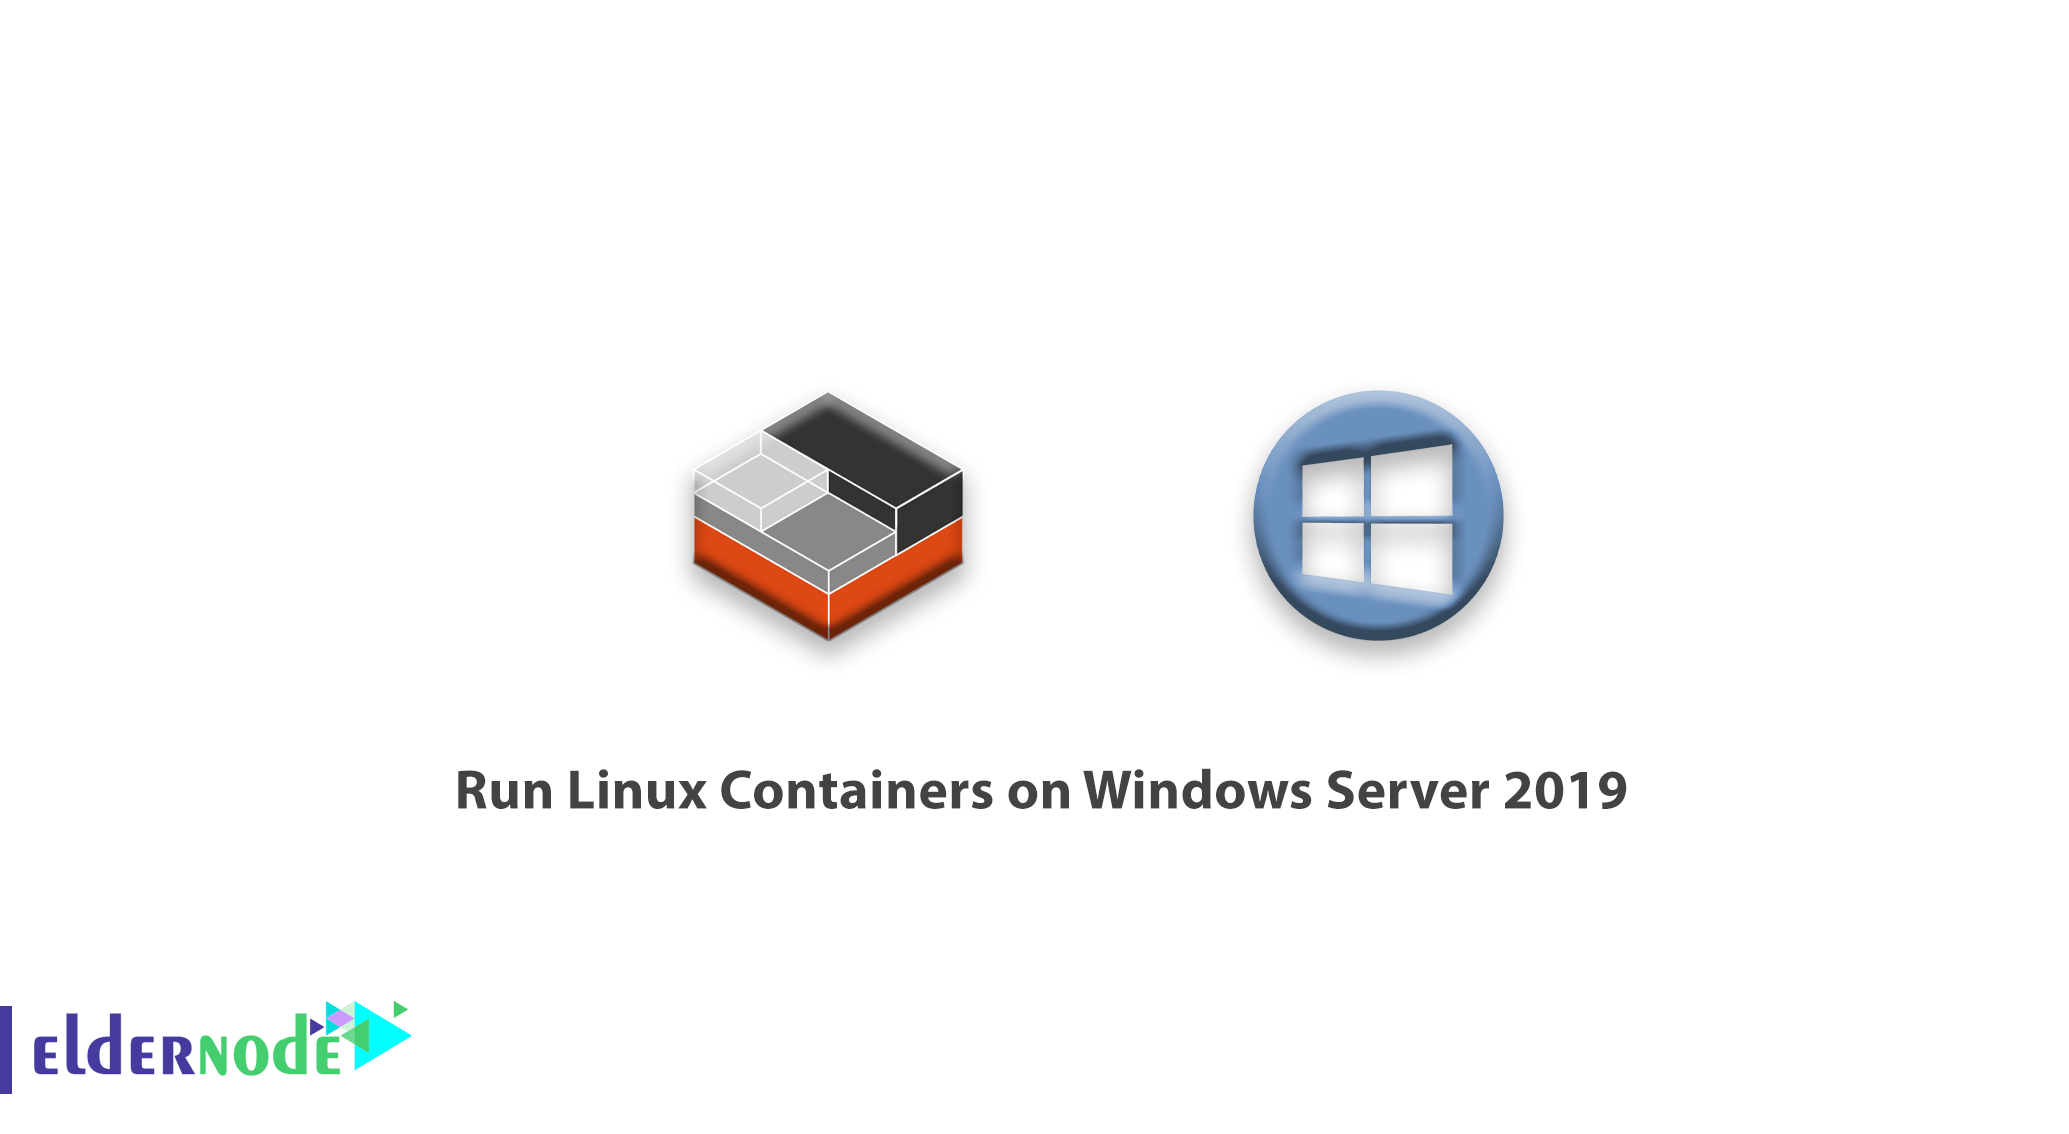 How to Run Linux Containers on Windows Server 2019